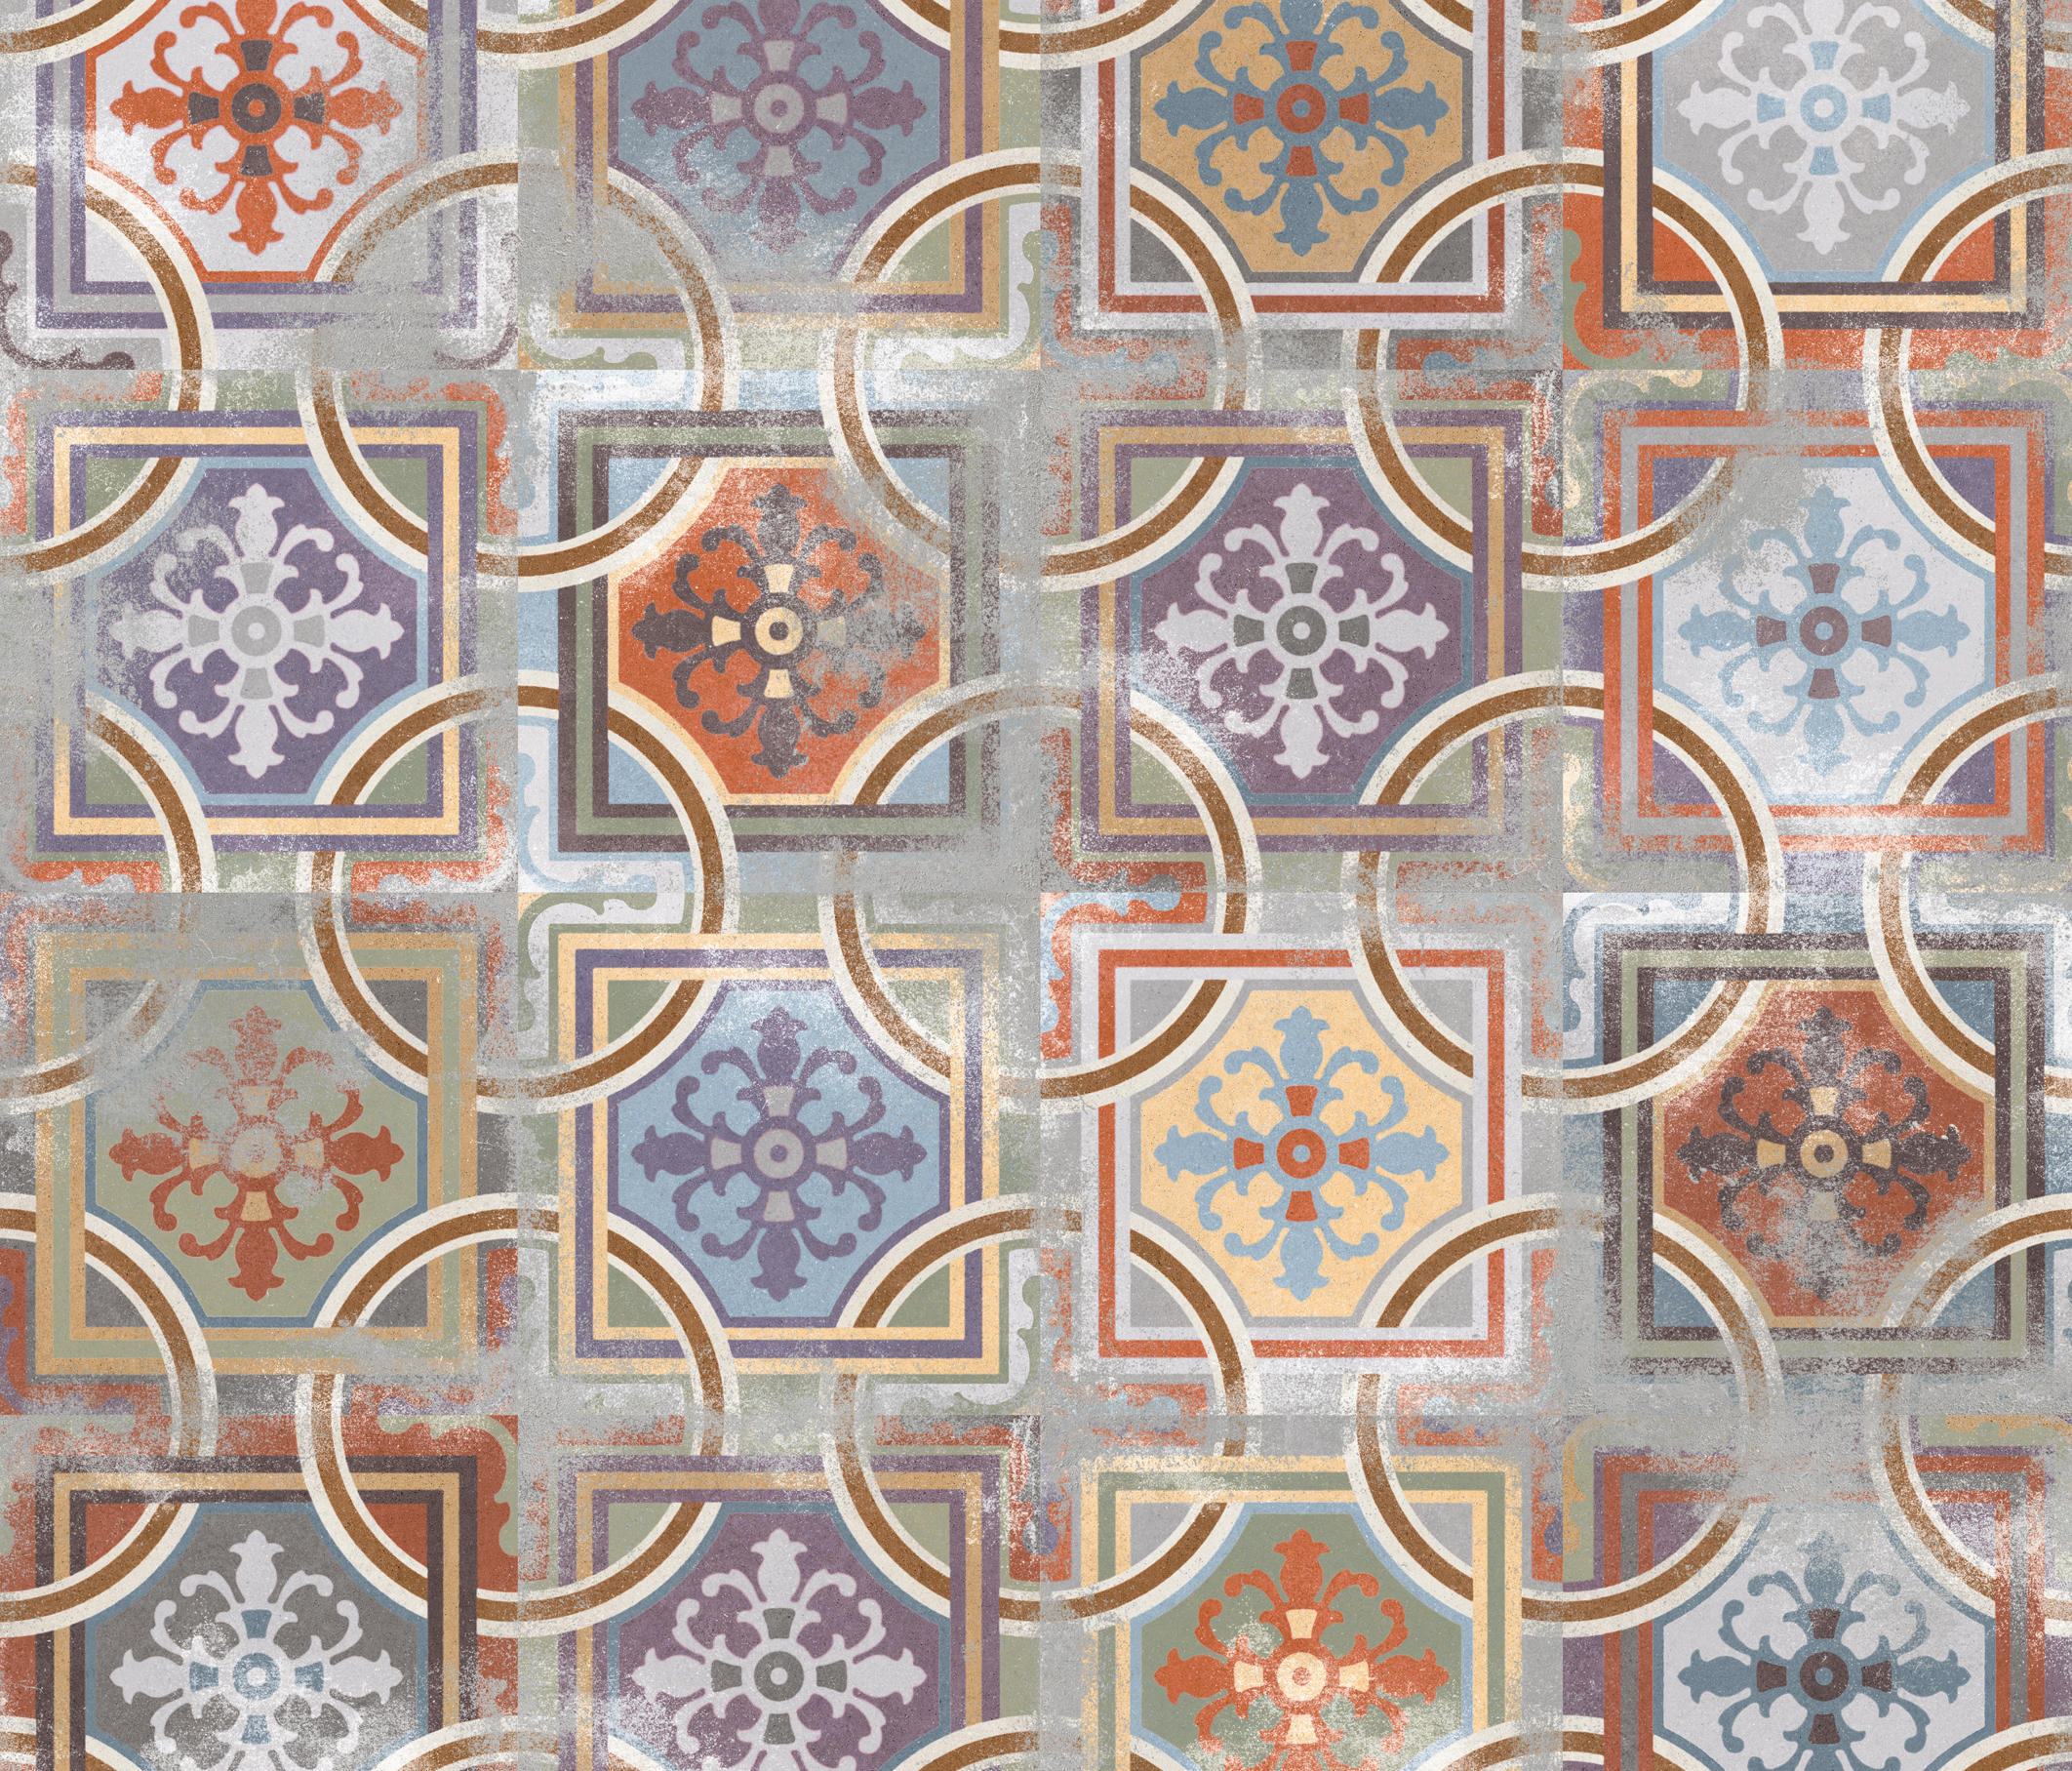 1900 comillas floor tiles from vives cer mica architonic - Vives ceramica ...